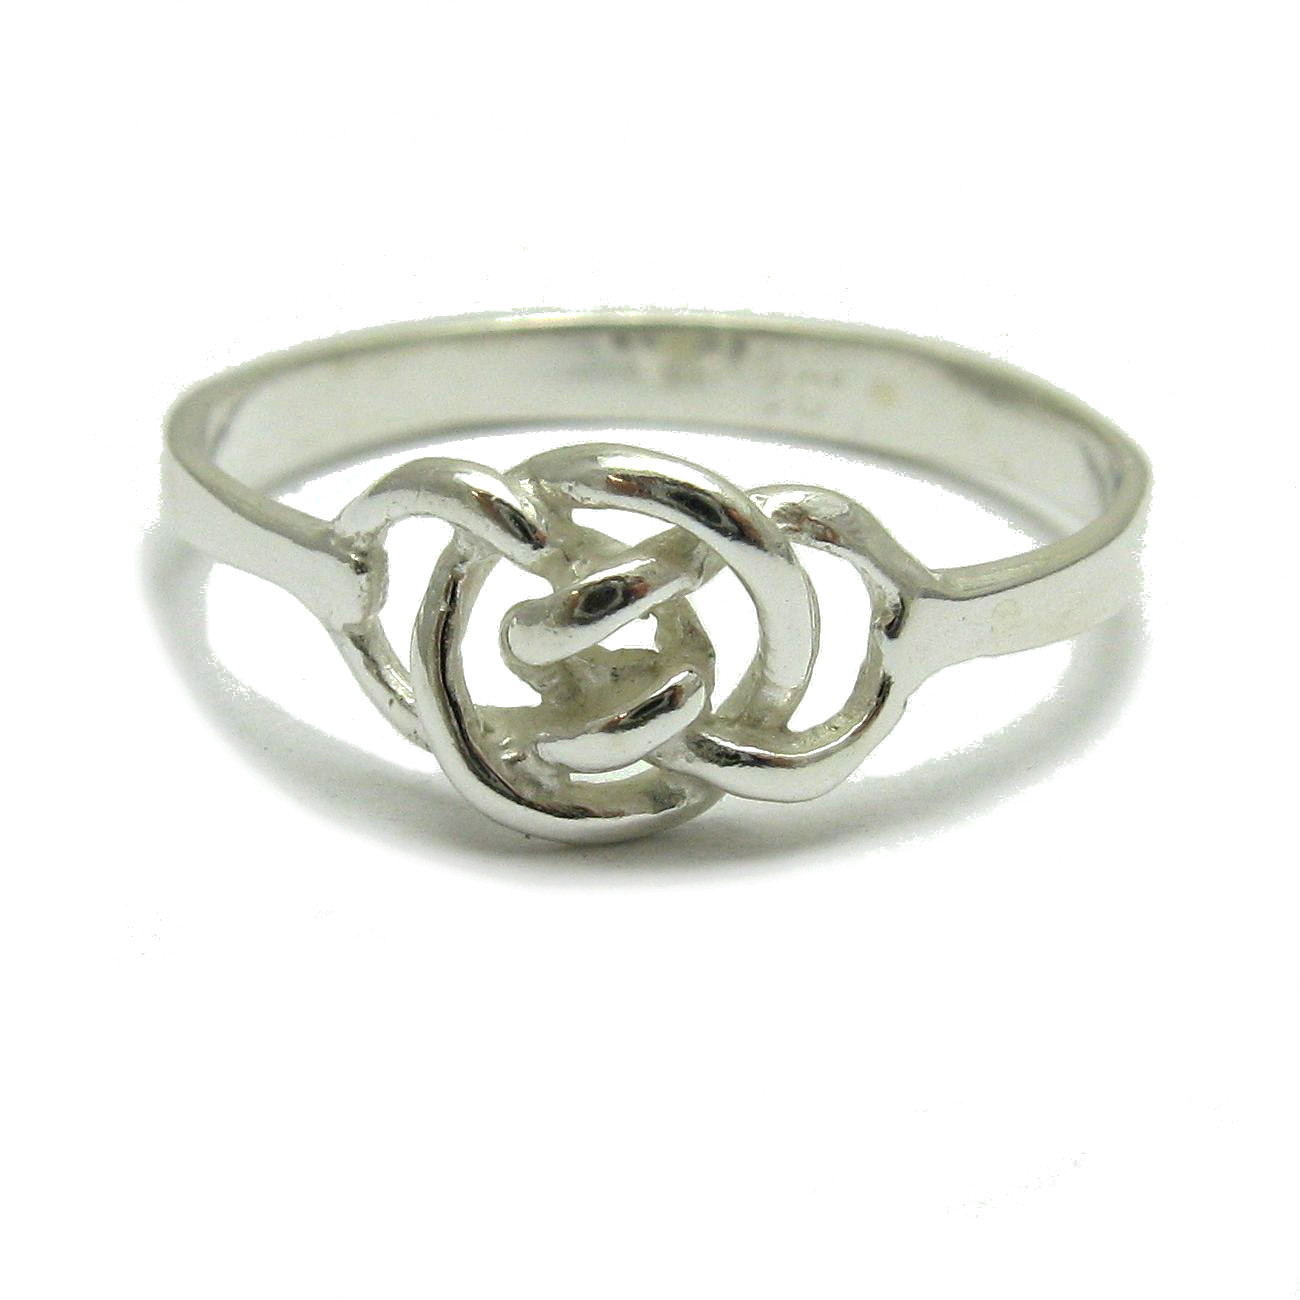 Silver ring - R001760